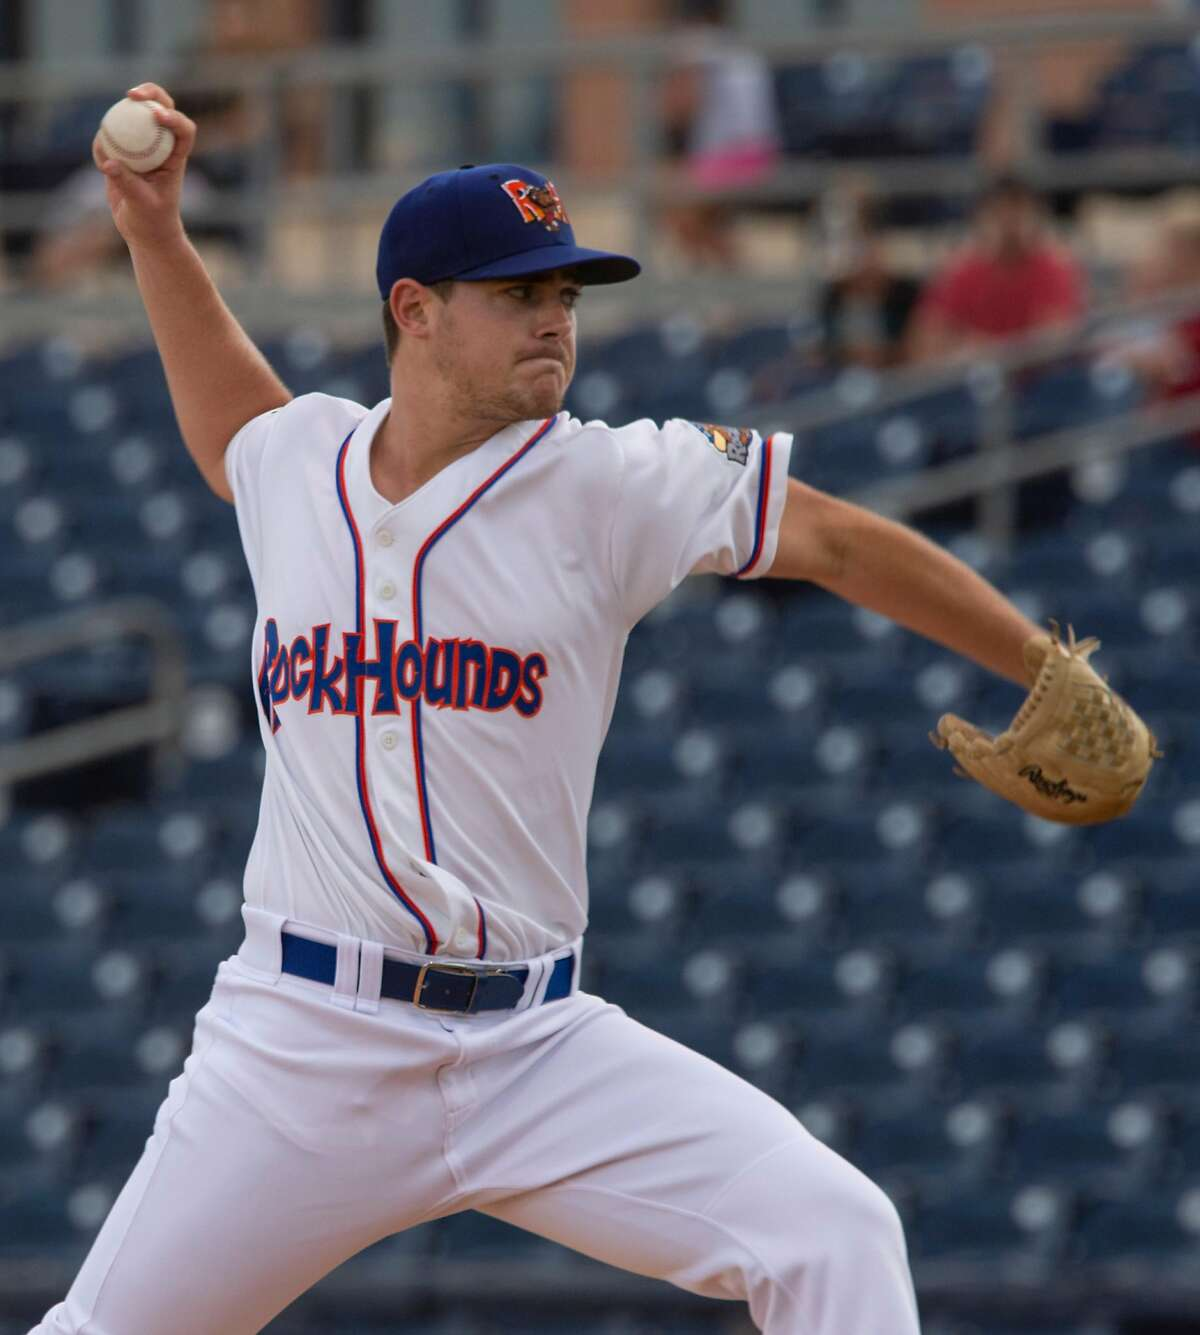 Midland starting pitcher Mitchell Jordan delivers a pitch 09/07/19 as the RockHounds take on the Amarillo Sod Poodles in game 4 of the Texas League Division playoff. Tim Fischer/Reporter-Telegram